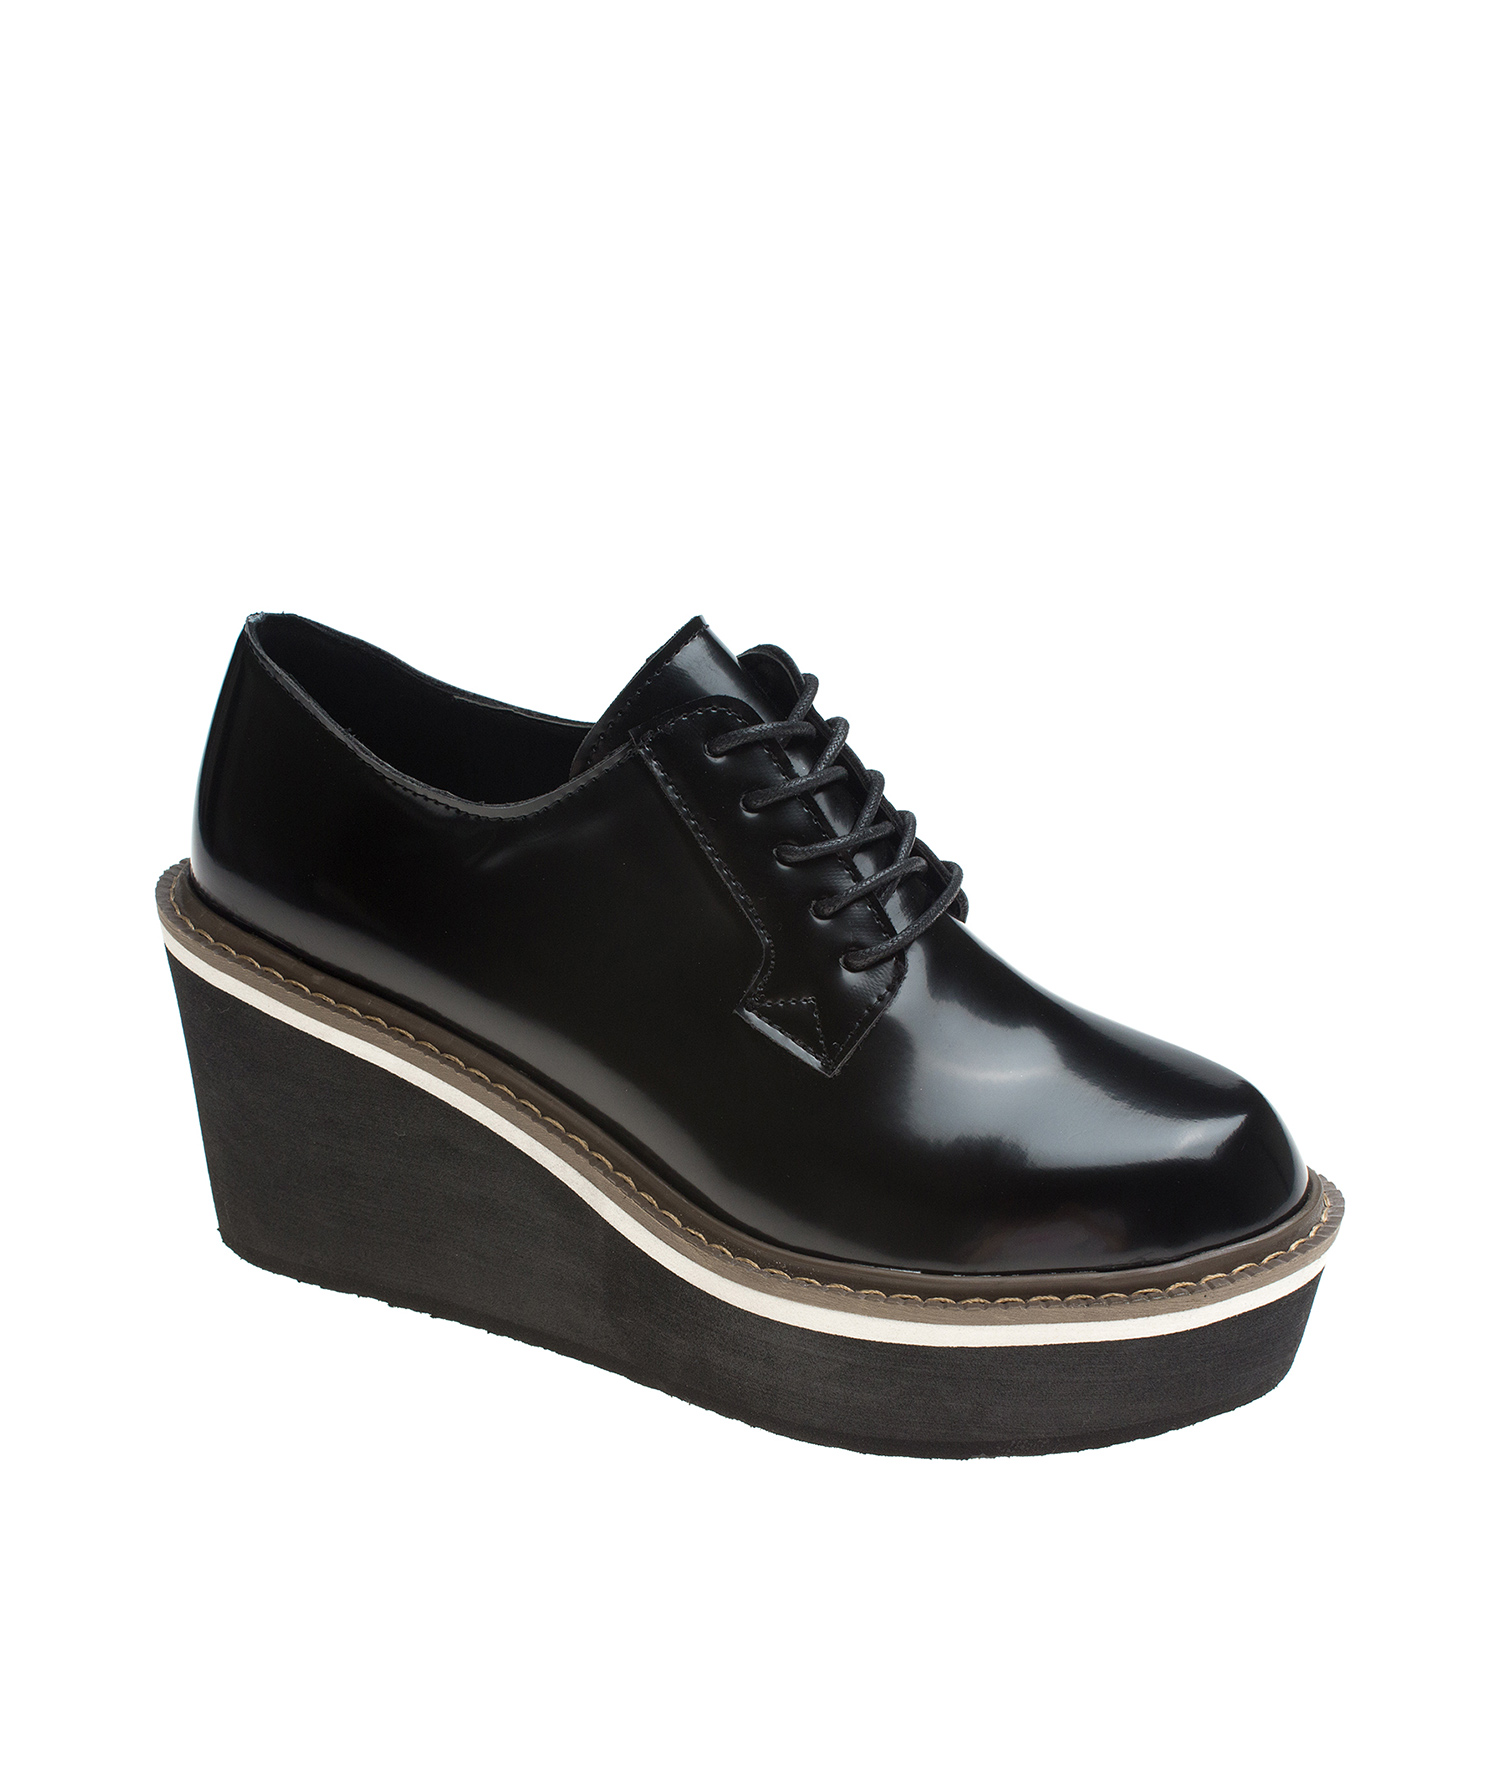 131f6aa2f468b Black Platform Wedge Oxford Creeper Shoes - annakastleshoes.com